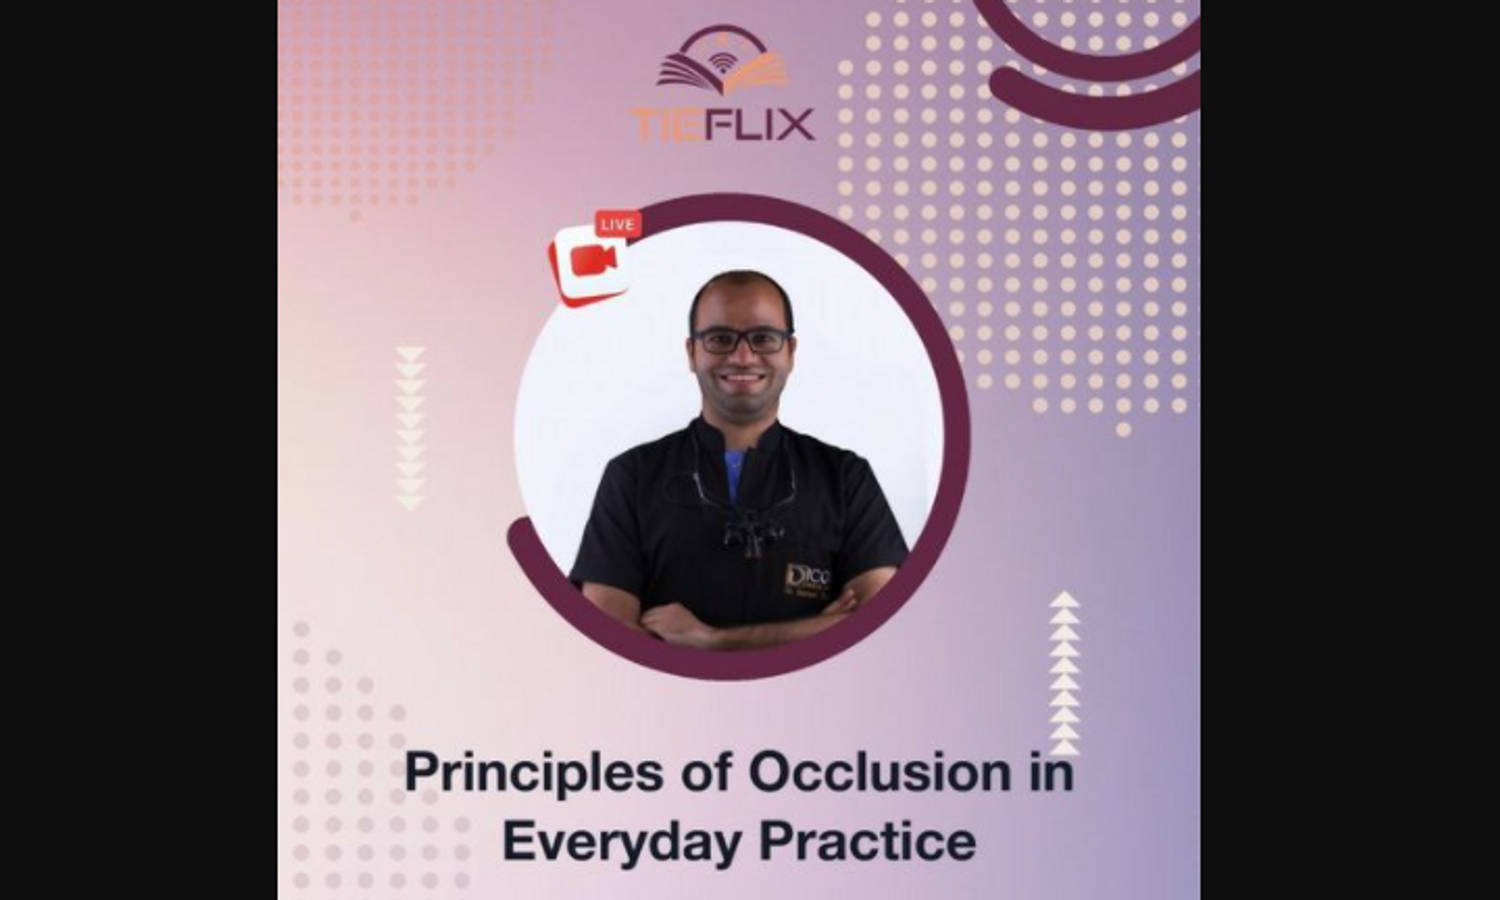 Principles of Occlusion in Everyday Practice – Live